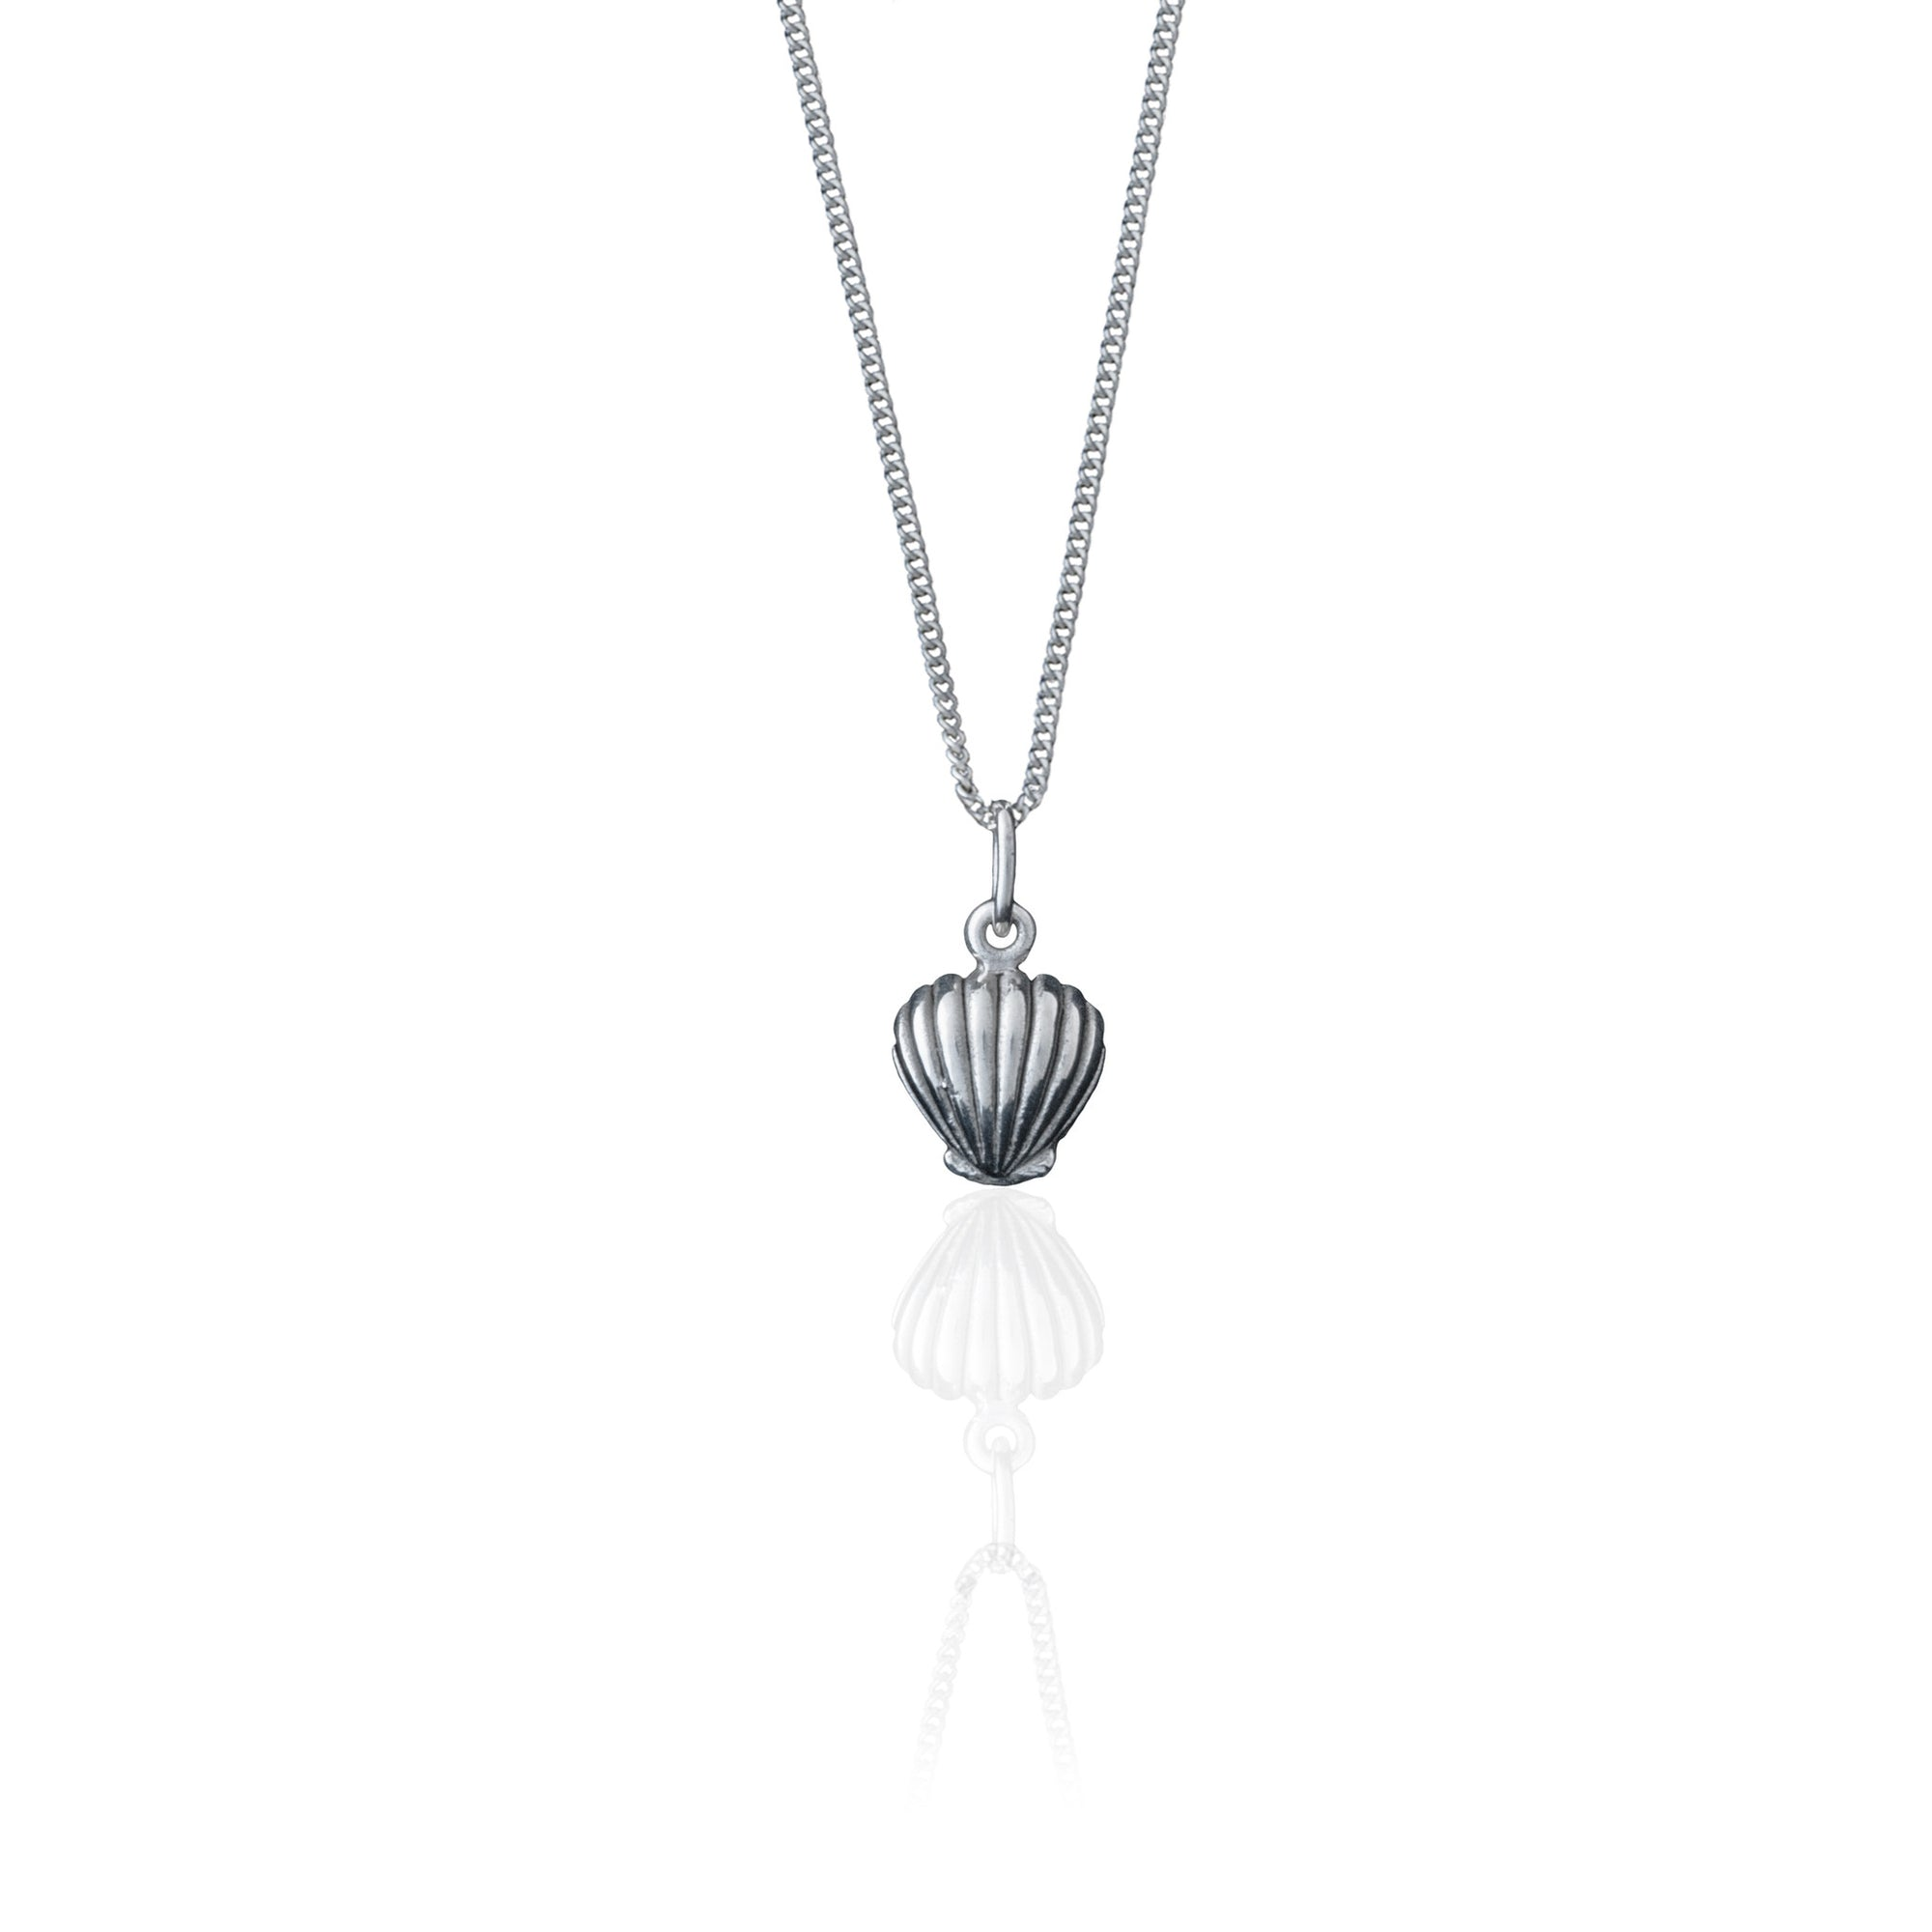 La Luna Rose Shell Necklace - Silver